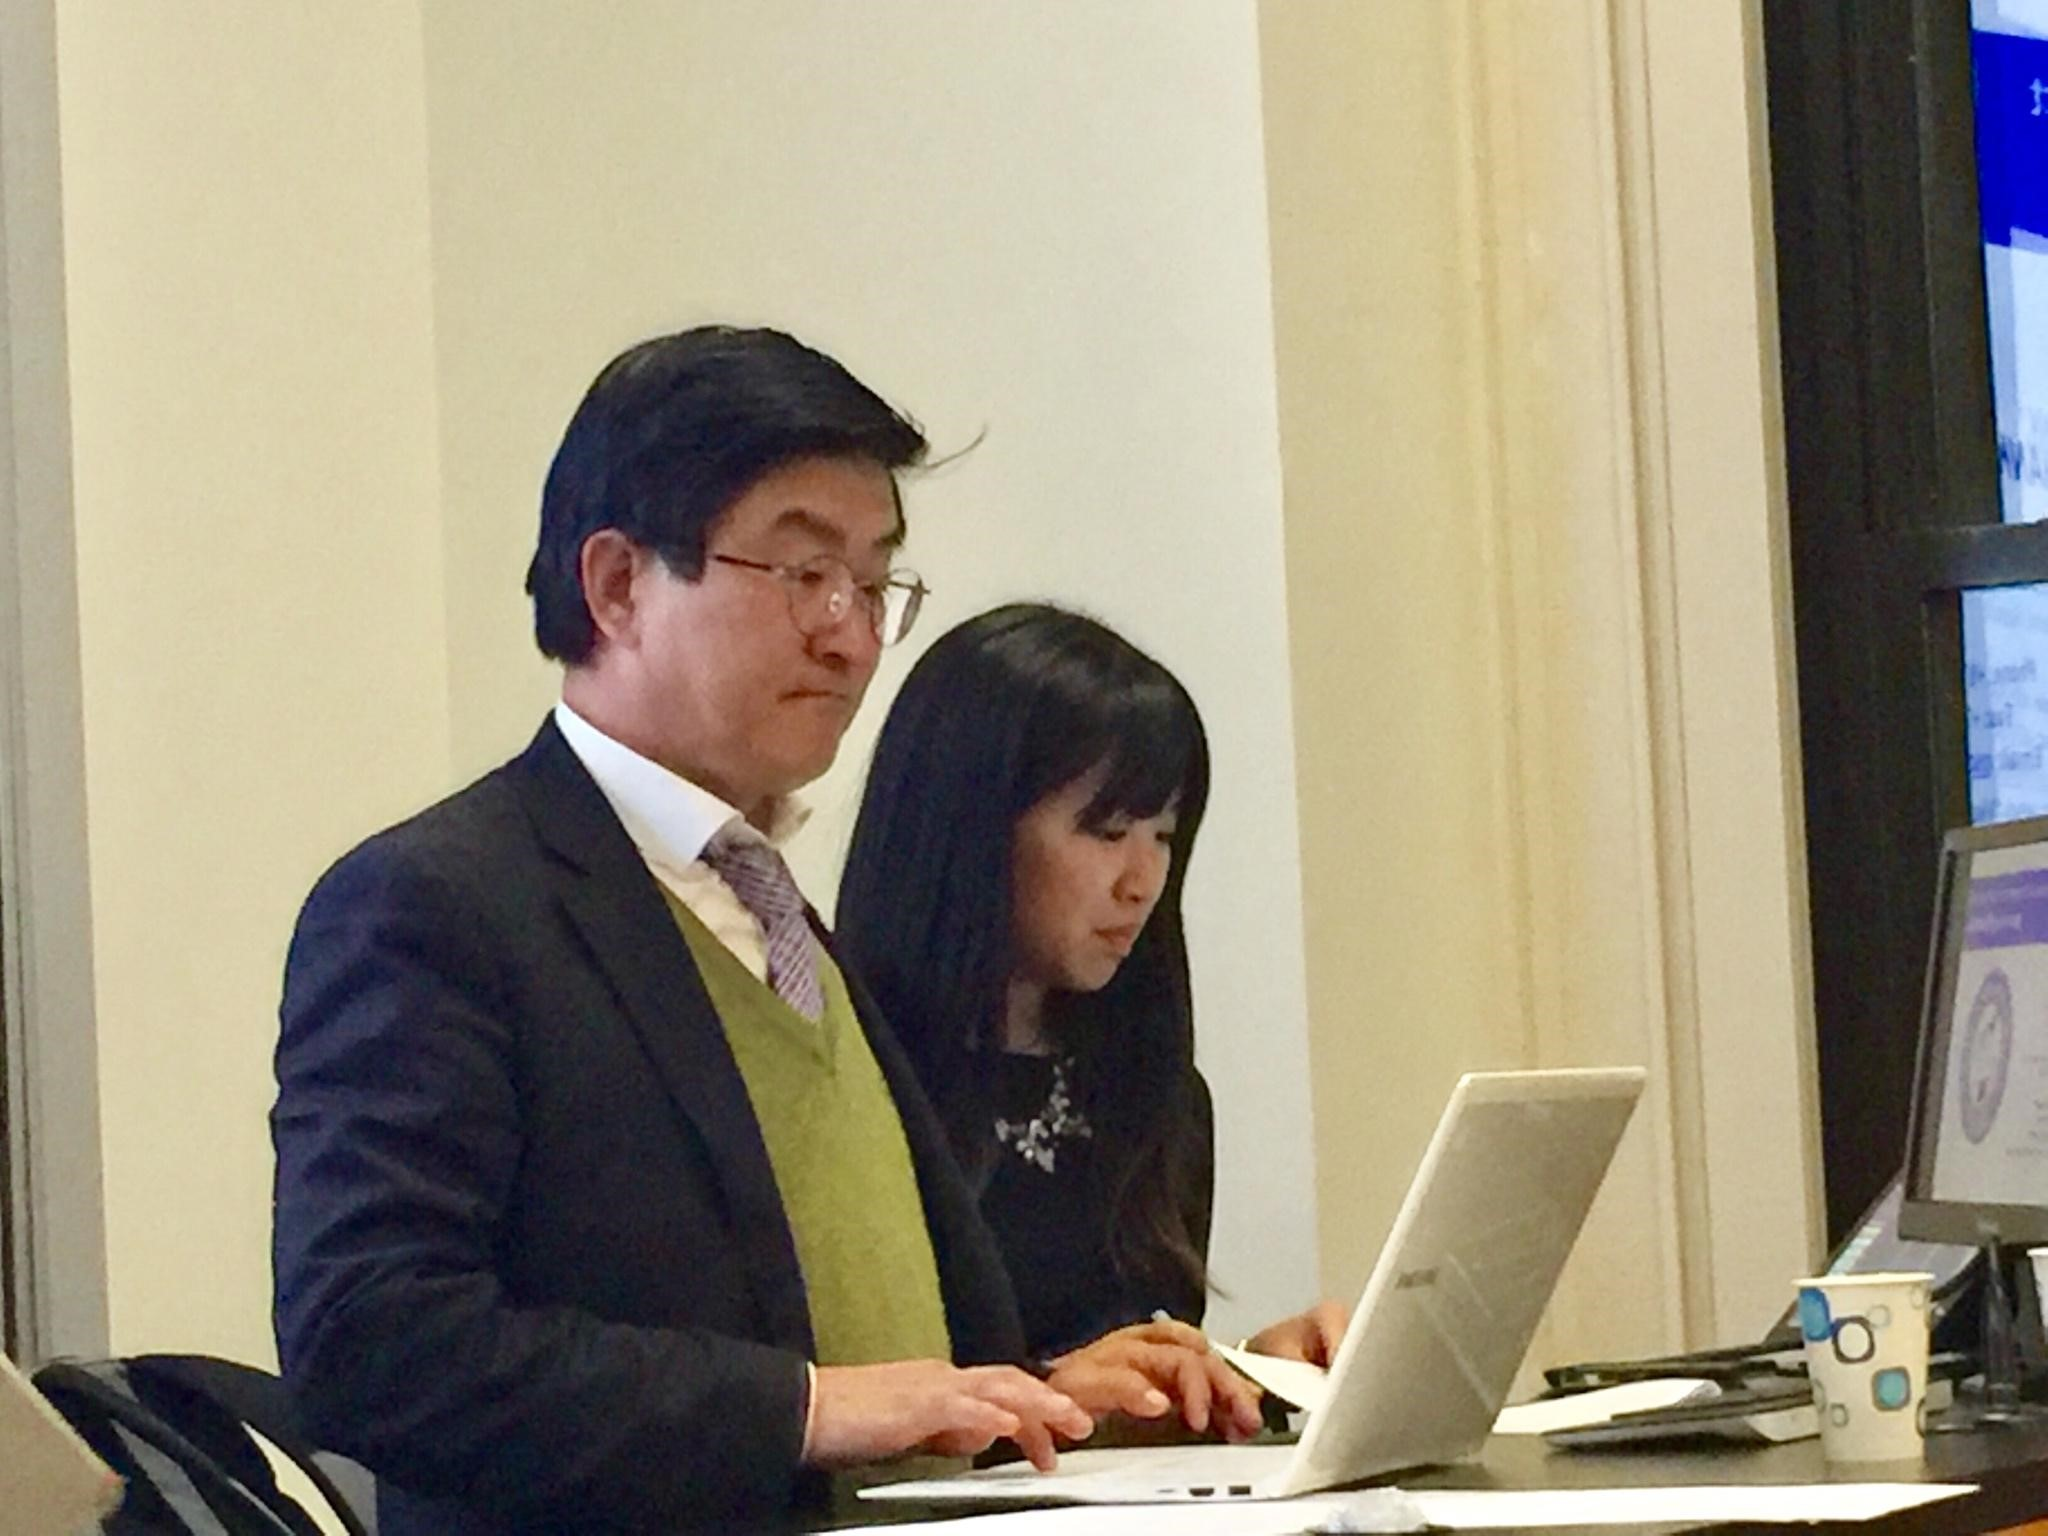 Ro Hee-Chang (left) and Grace Moon, President of NYU Freedom For North Korea (right).